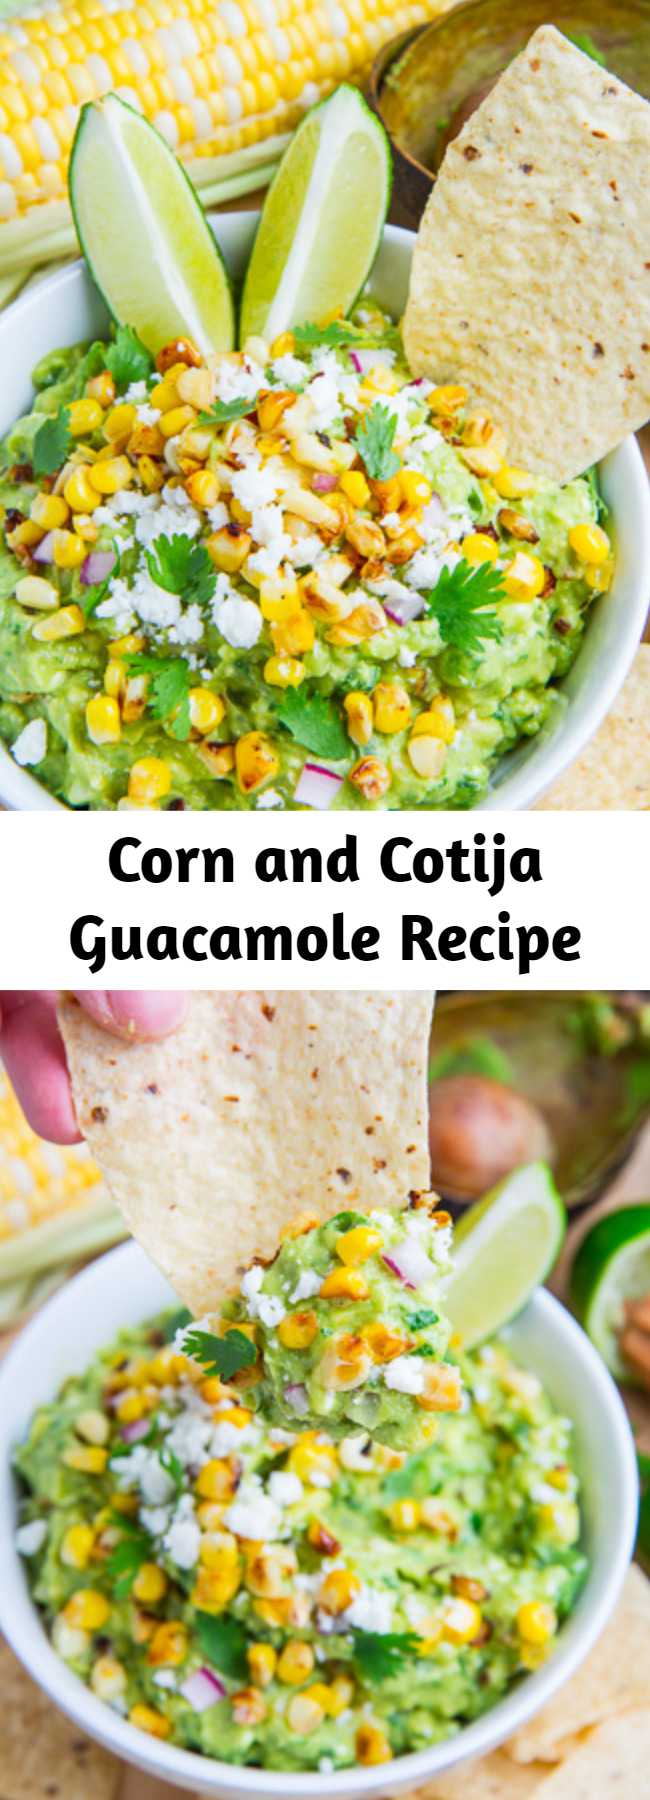 Corn and Cotija Guacamole Recipe - A guacamole inspired by esquites, aka Mexican corn salad, with charred or grilled corn and crumbled cotija. This corn and cotija guacamole makes for an amazing addition to any summer getogether and it is sure to disappear quickly so make a lot of it!